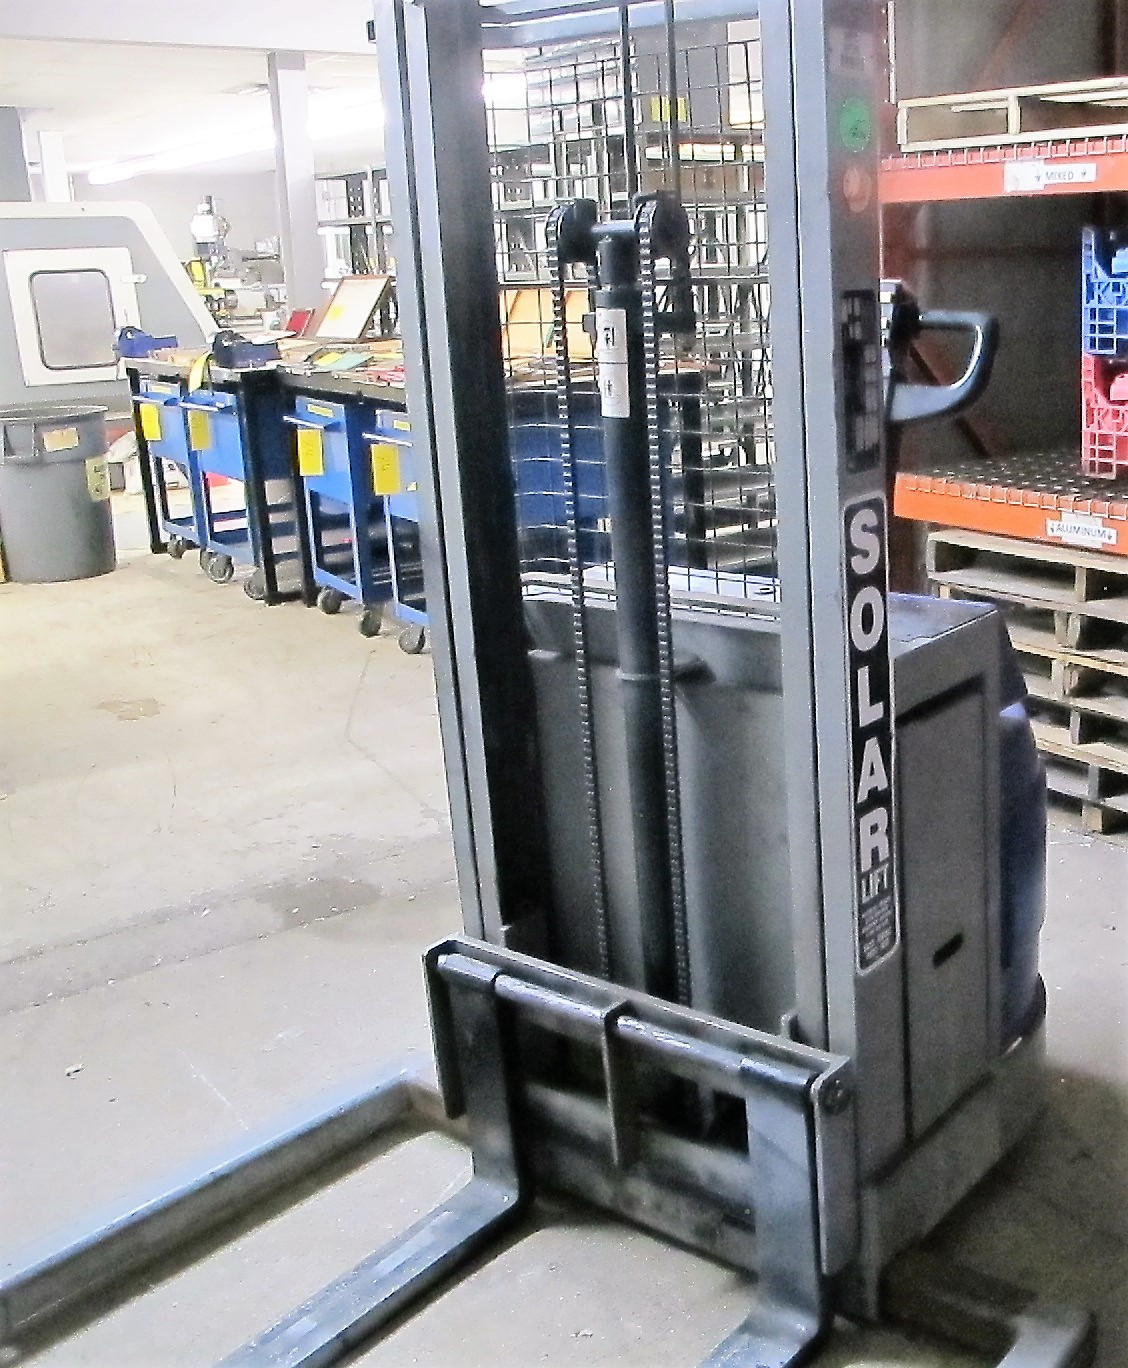 """BLUE GIANT, BGS-90 ELECTRIC STACKER, 1500 LB CAP, 90"""" LIFT, 2 STAGE, S/N 04-30010 - Image 2 of 4"""